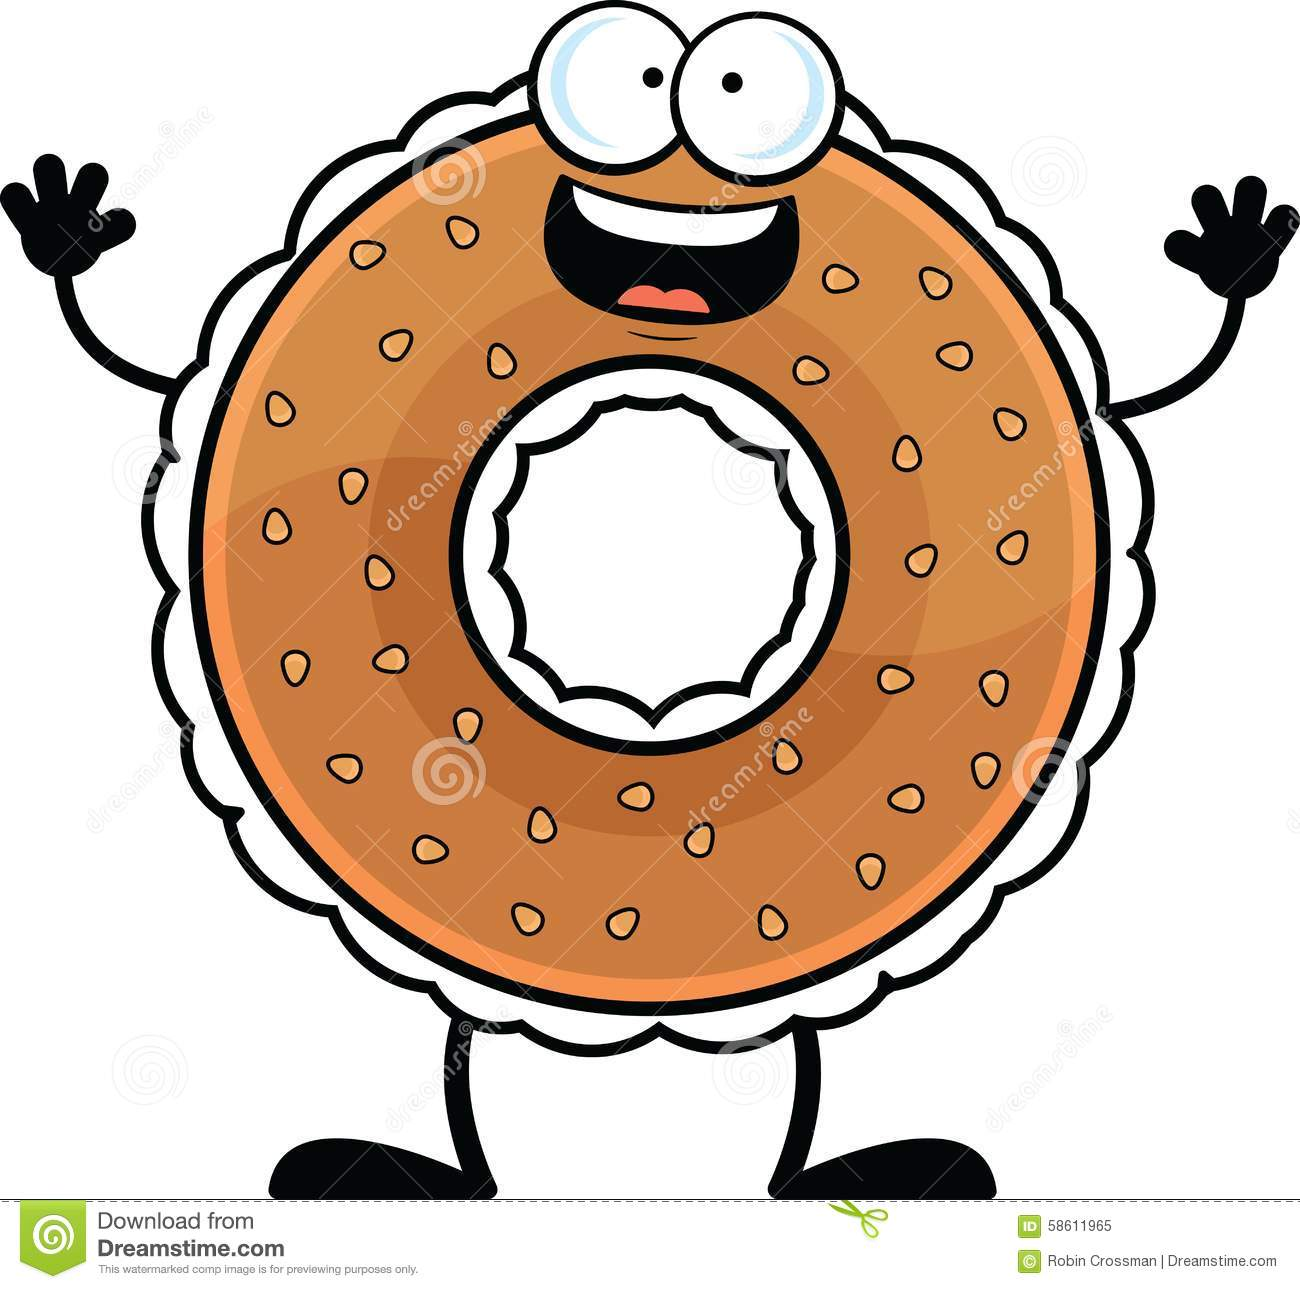 Cartoon illustration of a bagel with a happy expression.